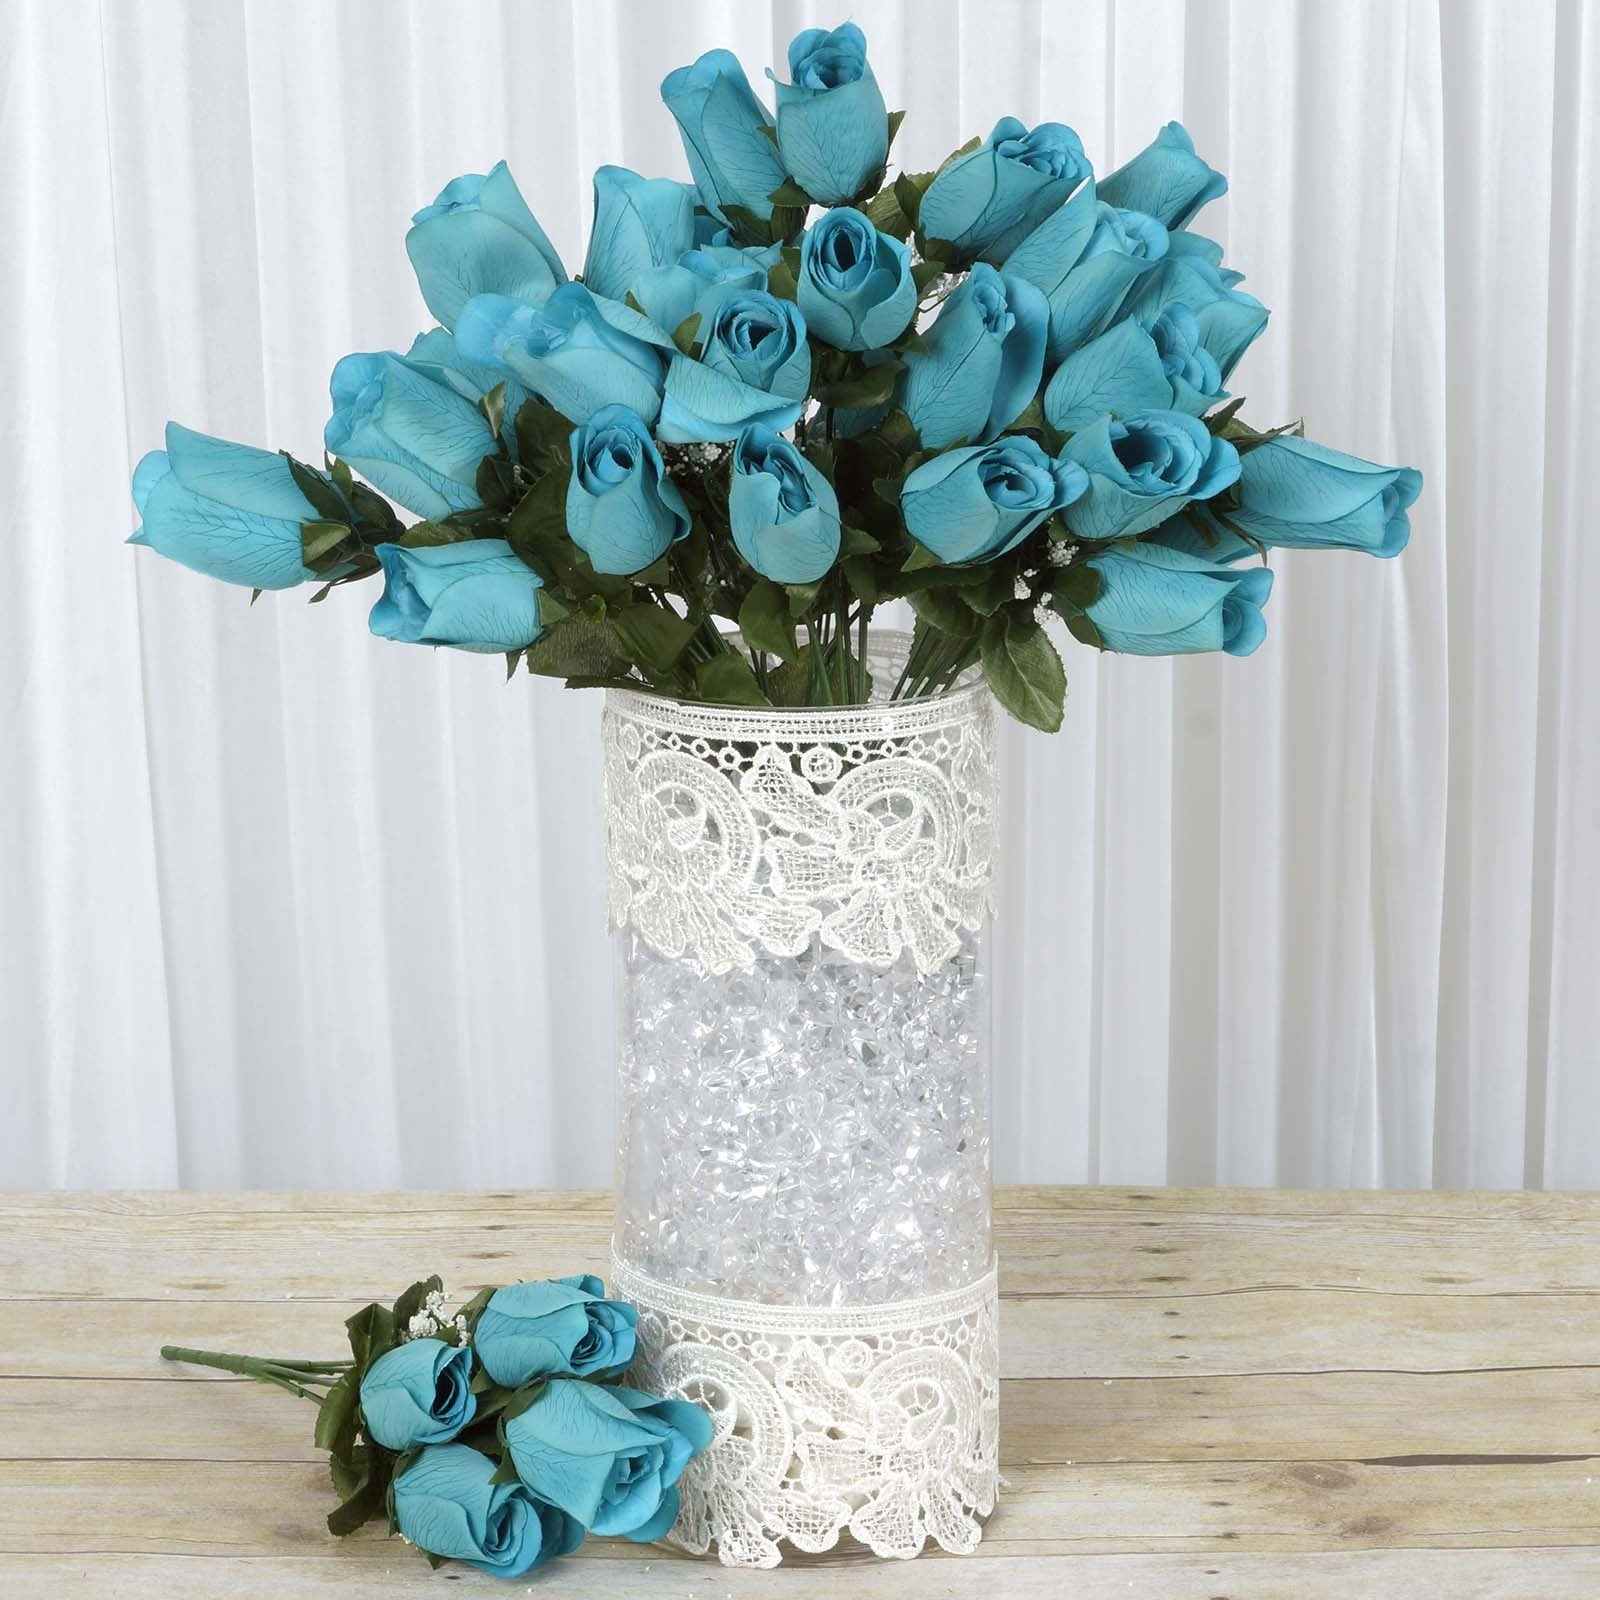 12 Bush 84 pcs Turquoise Artificial Velvet Rose Bud Flowers Bridal ...